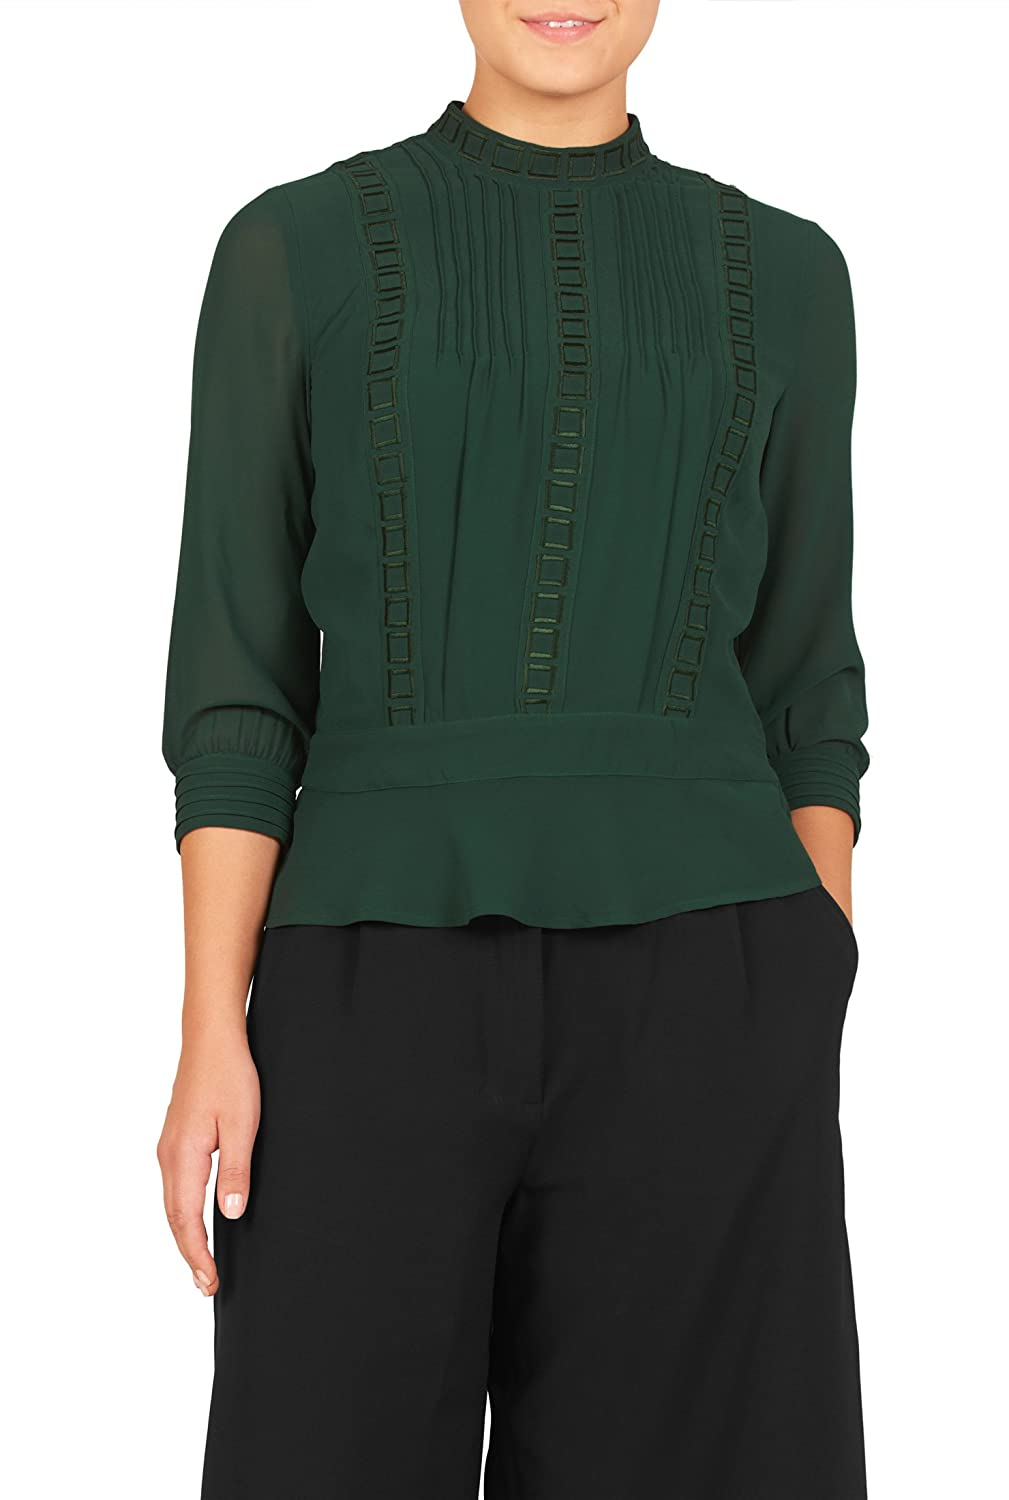 Edwardian Style Blouses Geo embellished chiffon peplum top $48.95 AT vintagedancer.com